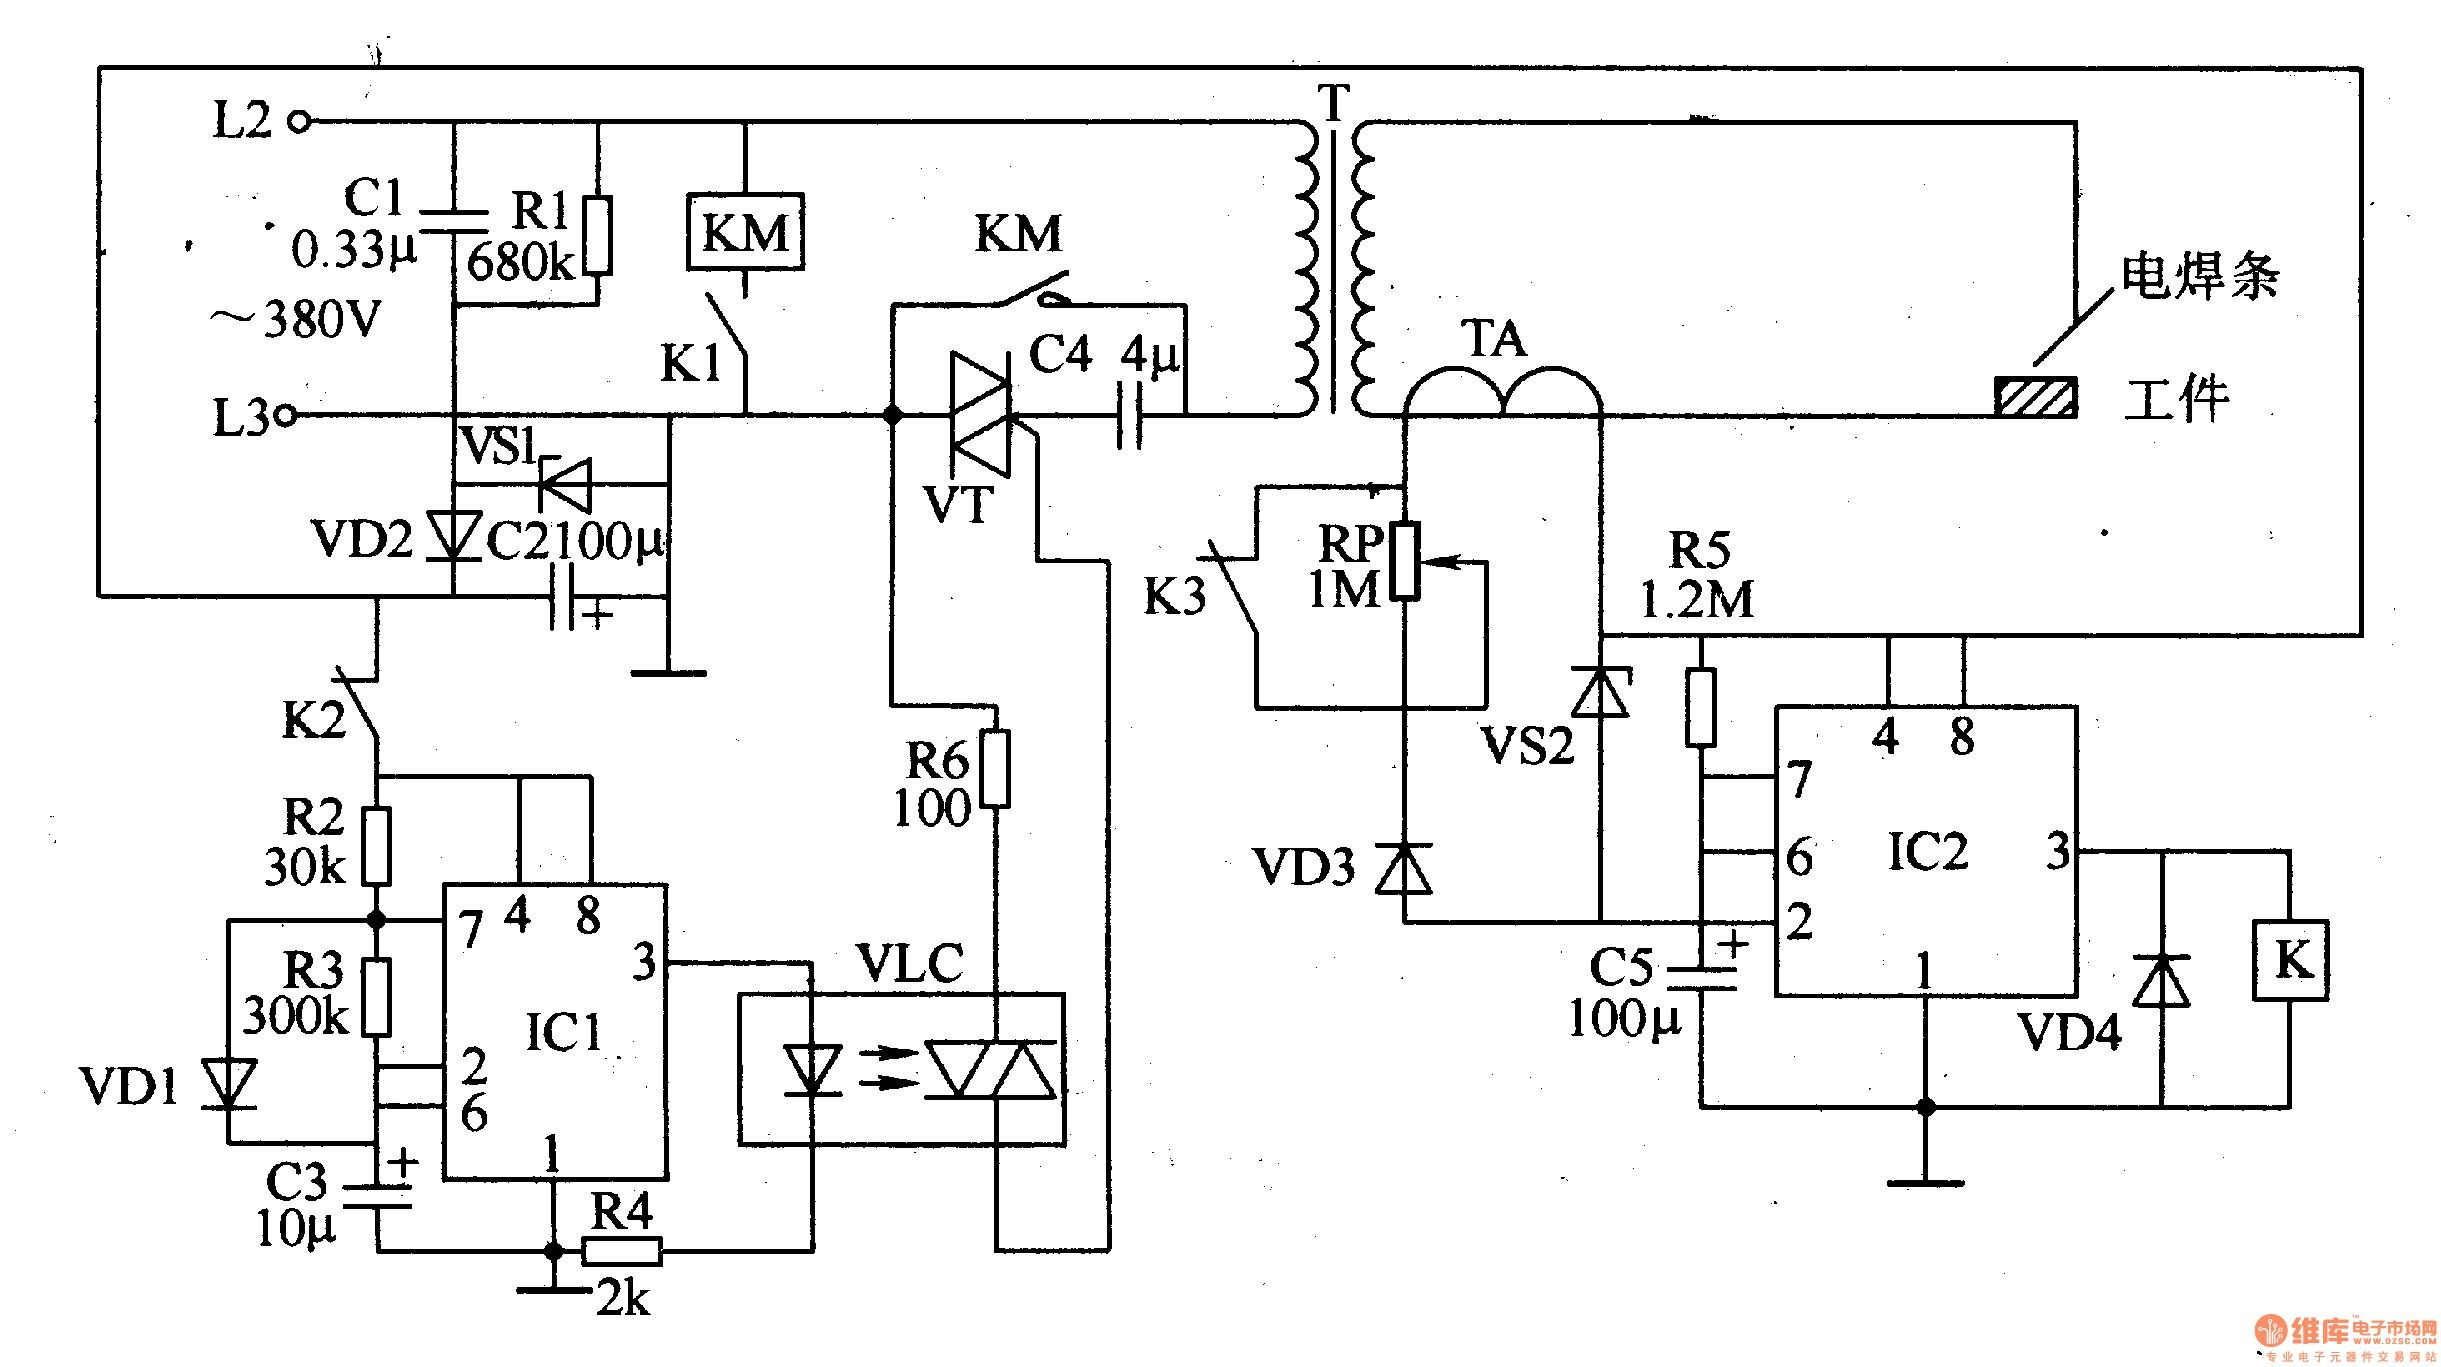 medium resolution of lovely 3 phase welding machine circuit diagram inside wiring pdf 3 phase welding machine circuit diagram pdf 3 phase welding machine diagram